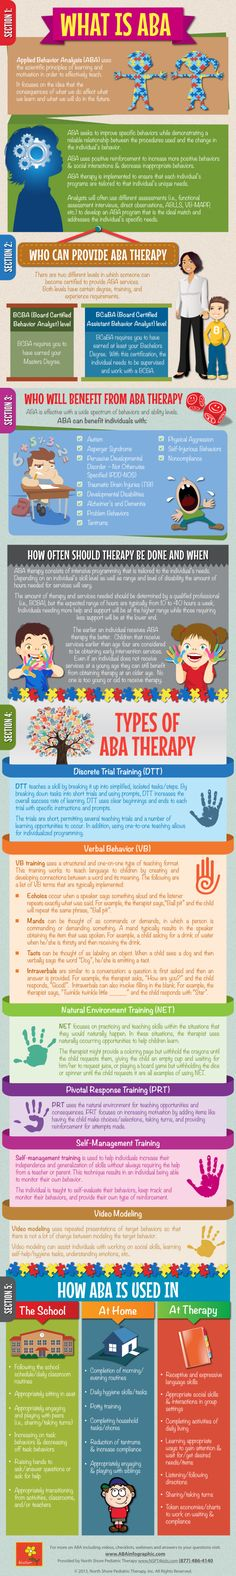 ABA Infographic 1000pixels resized 600